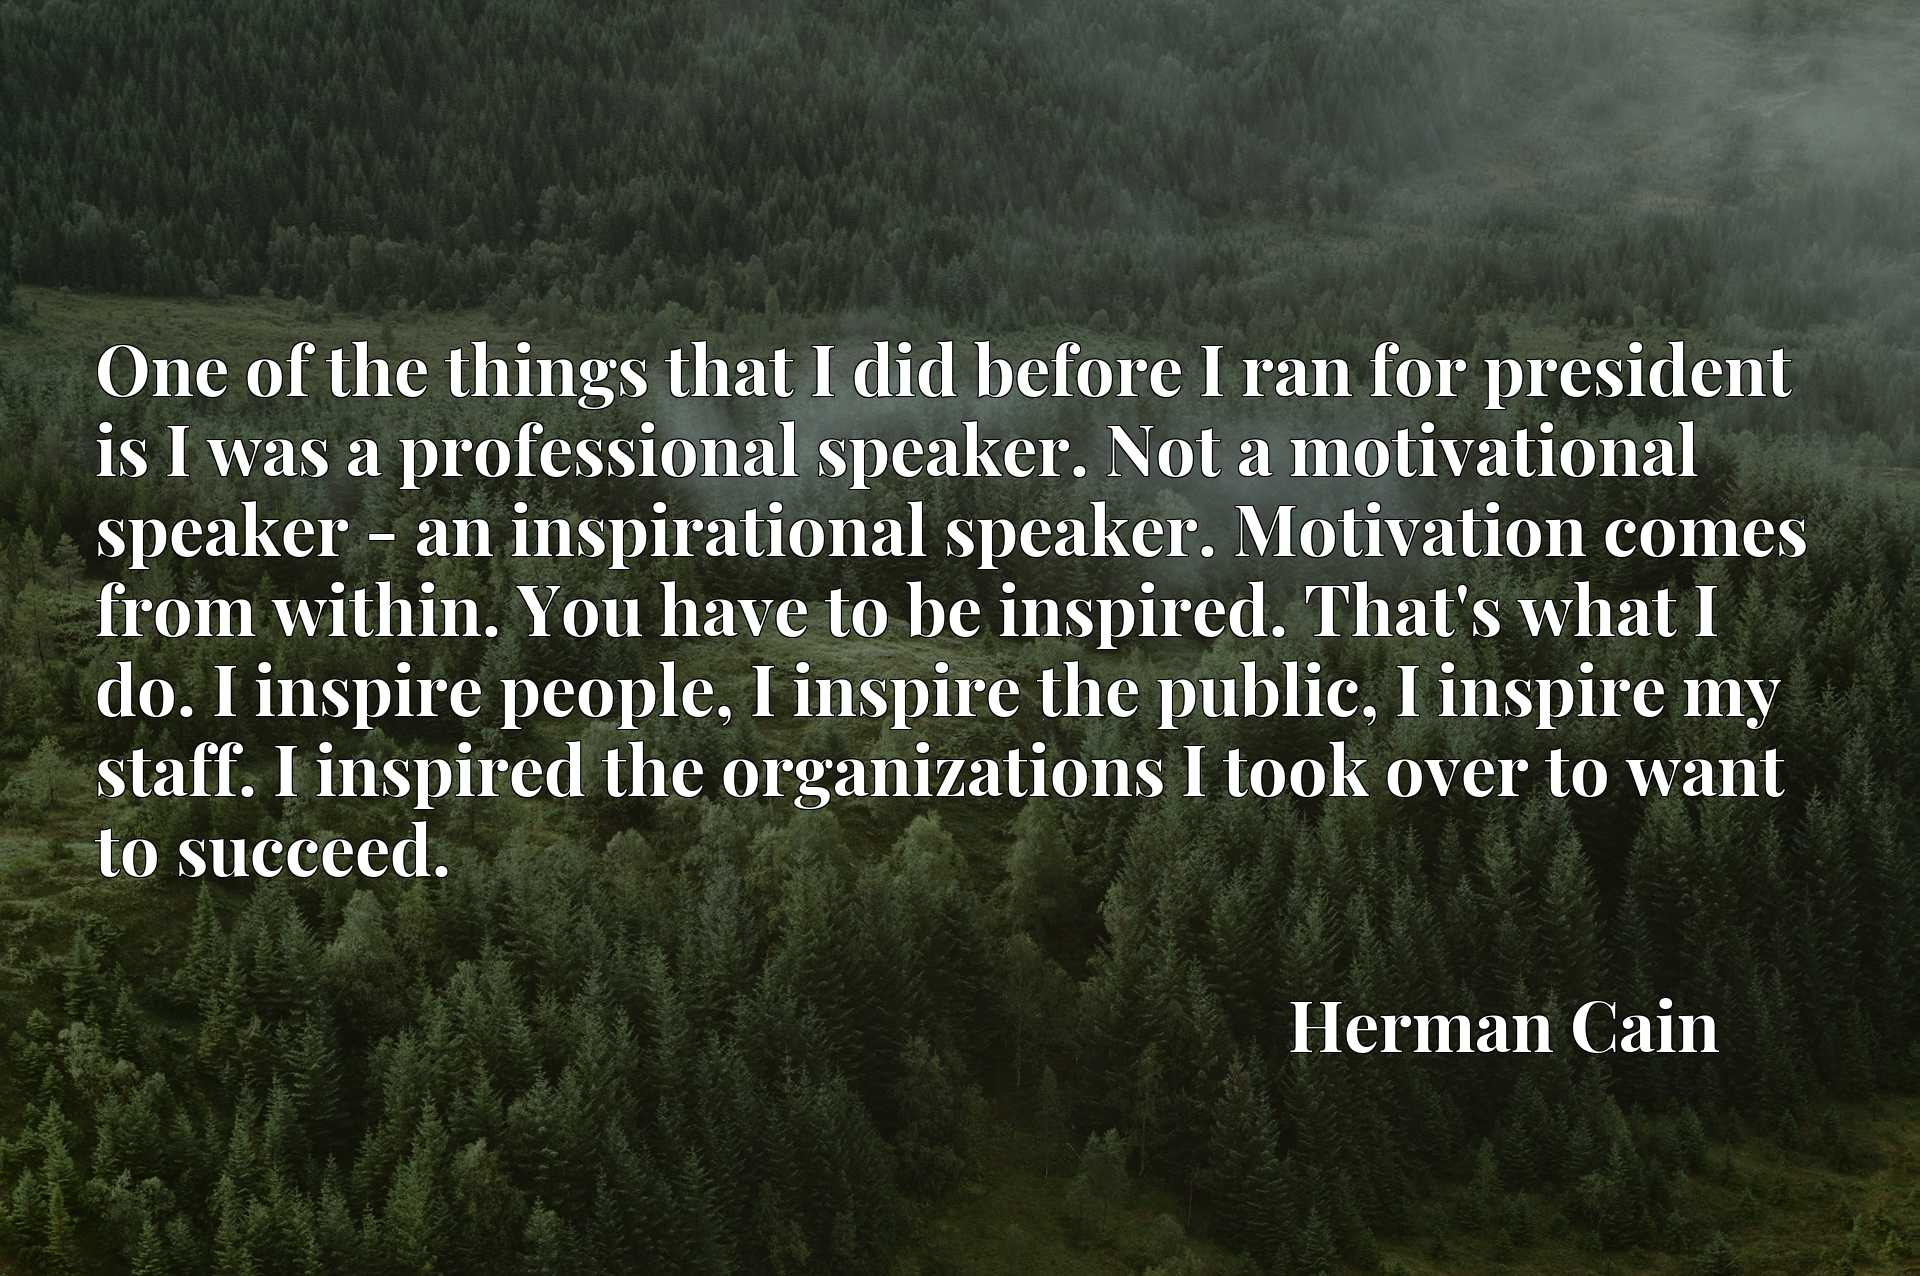 One of the things that I did before I ran for president is I was a professional speaker. Not a motivational speaker - an inspirational speaker. Motivation comes from within. You have to be inspired. That's what I do. I inspire people, I inspire the public, I inspire my staff. I inspired the organizations I took over to want to succeed.